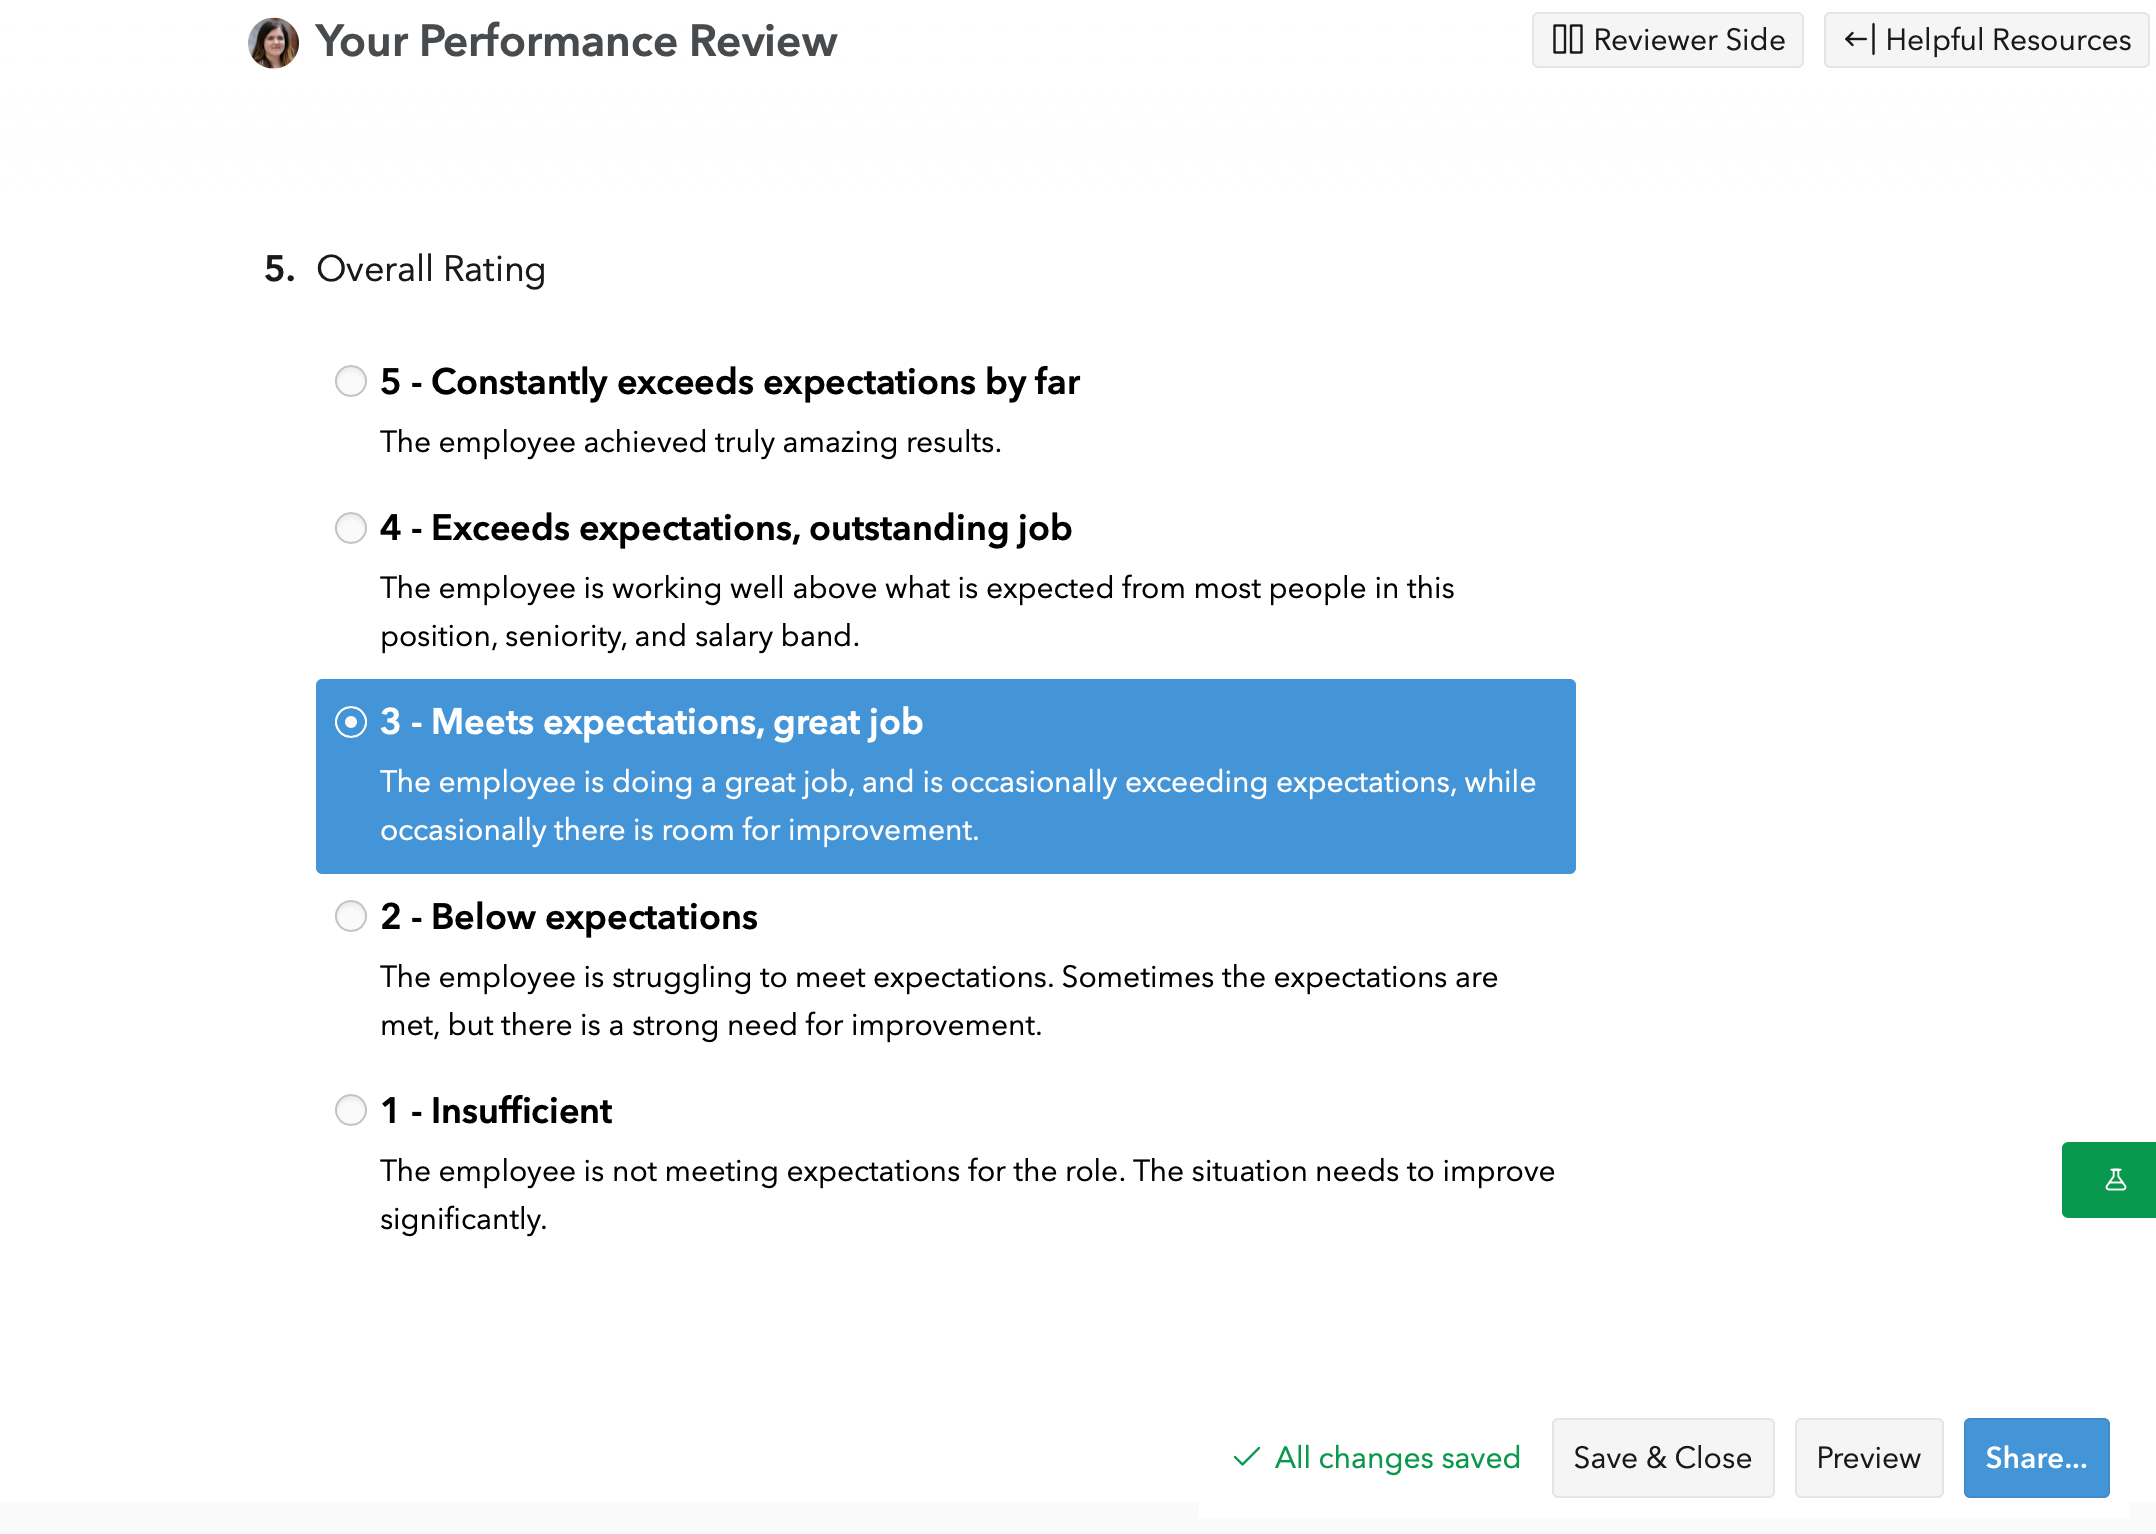 New Performance Review writing experience - Small Improvements